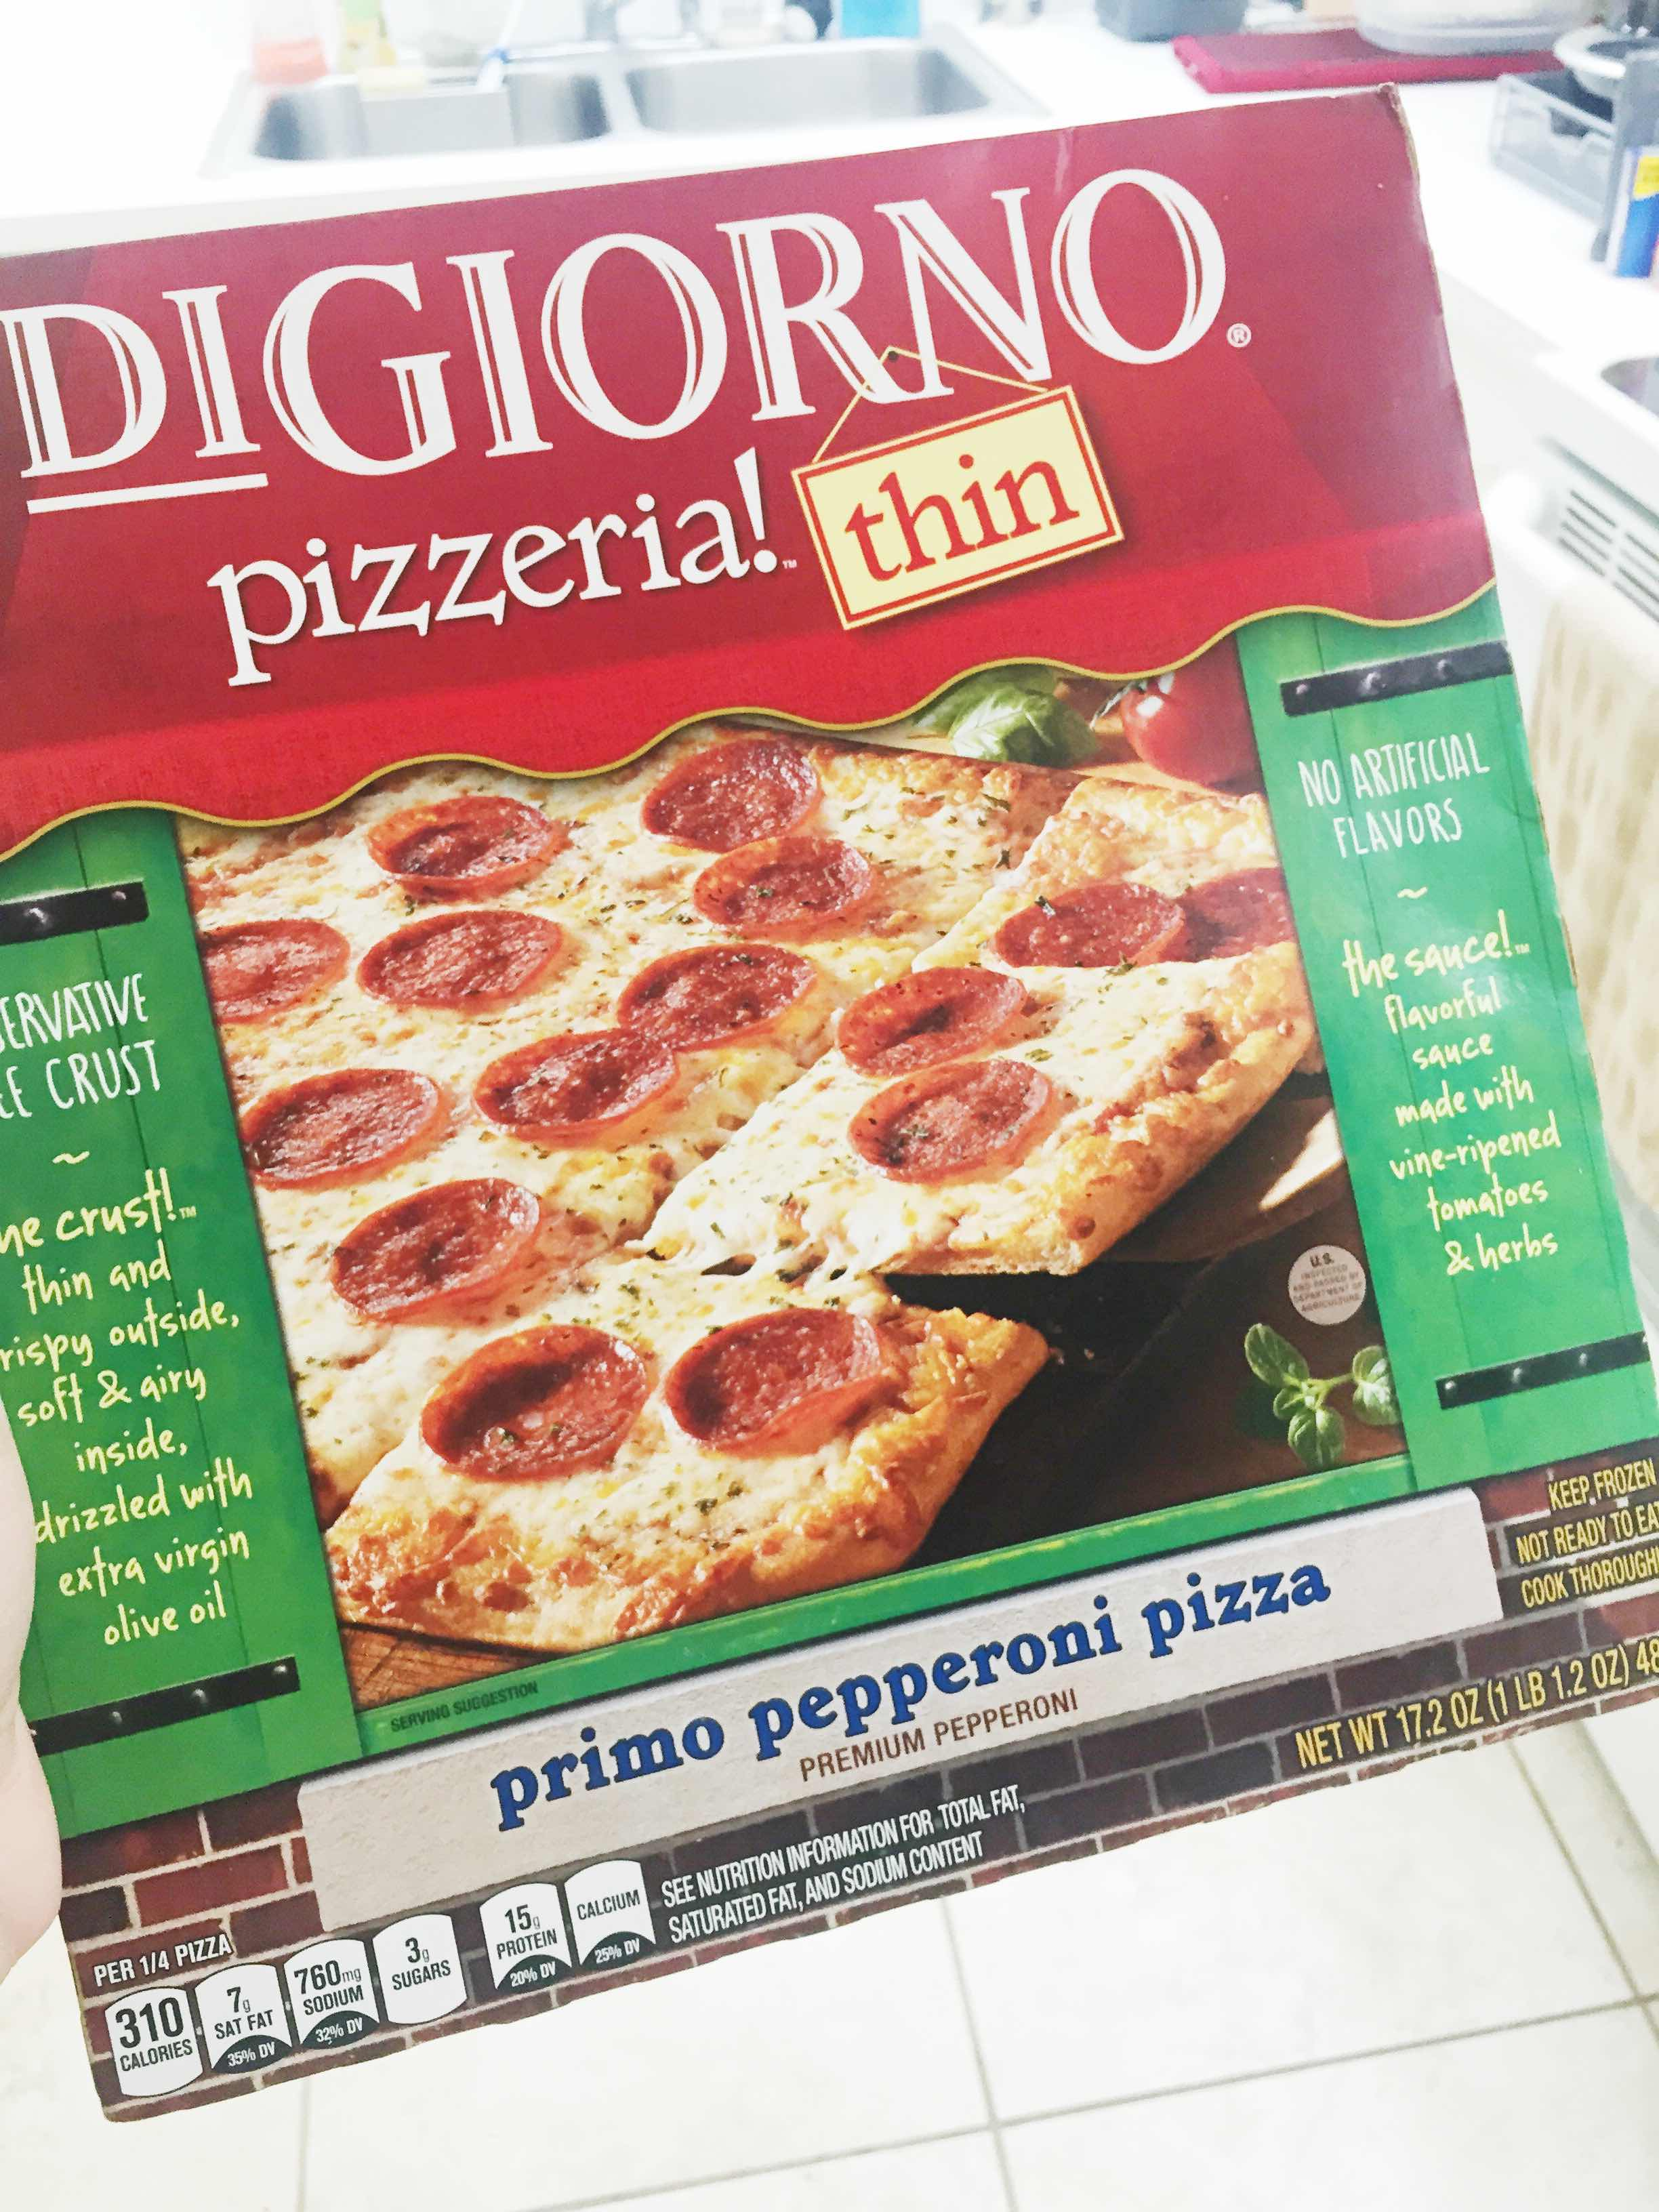 Digiorno Pizzeria Thin